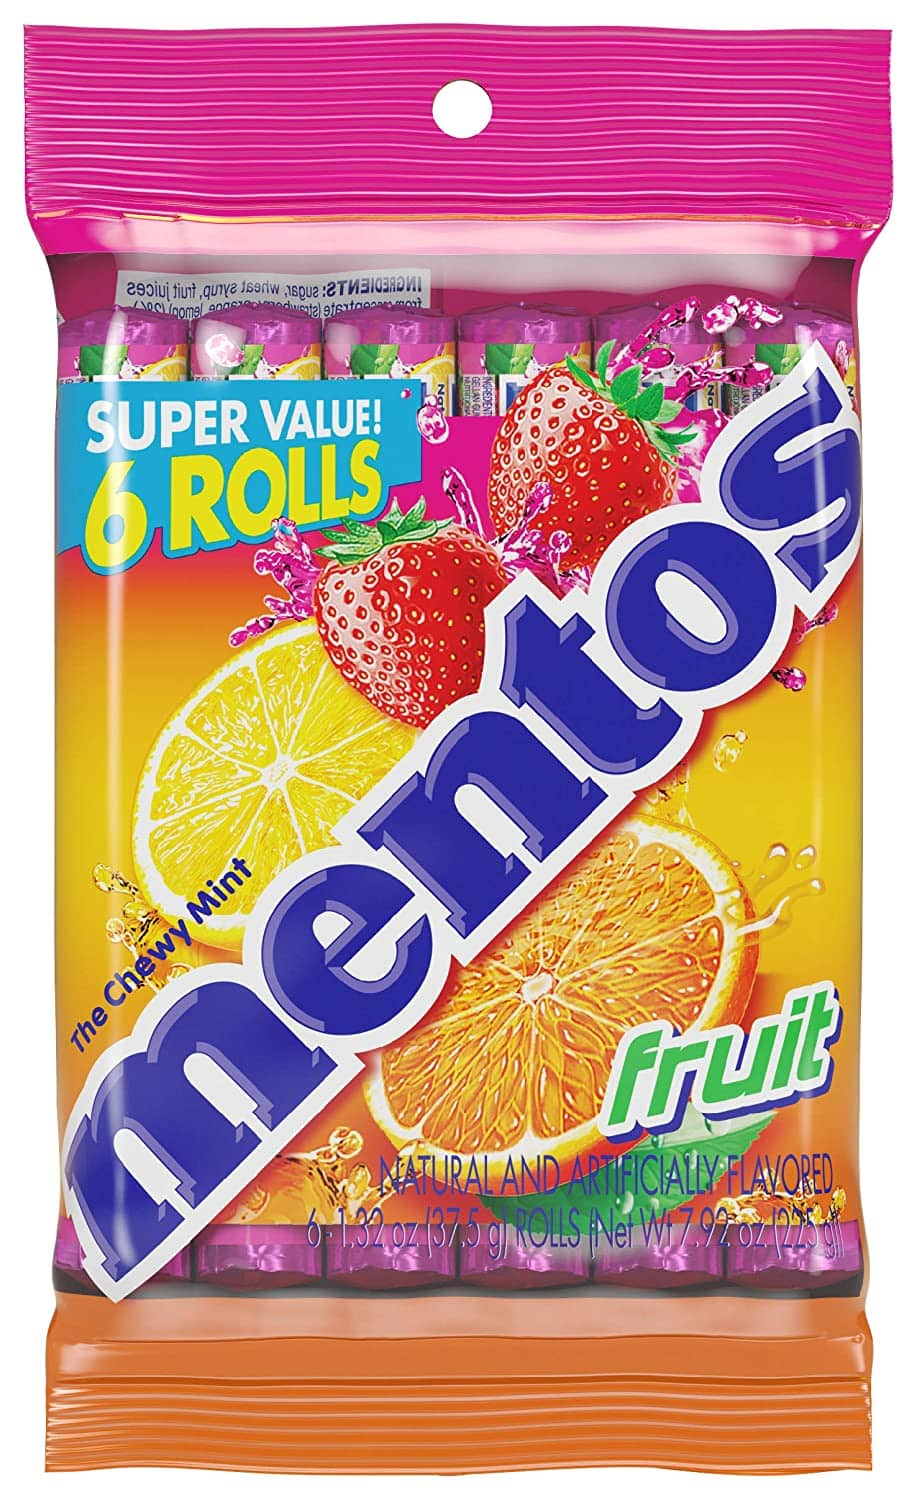 Mentos Chewy Candy 6 Pack, Fruit flavor, 40% off, $1.79, Not S&S!